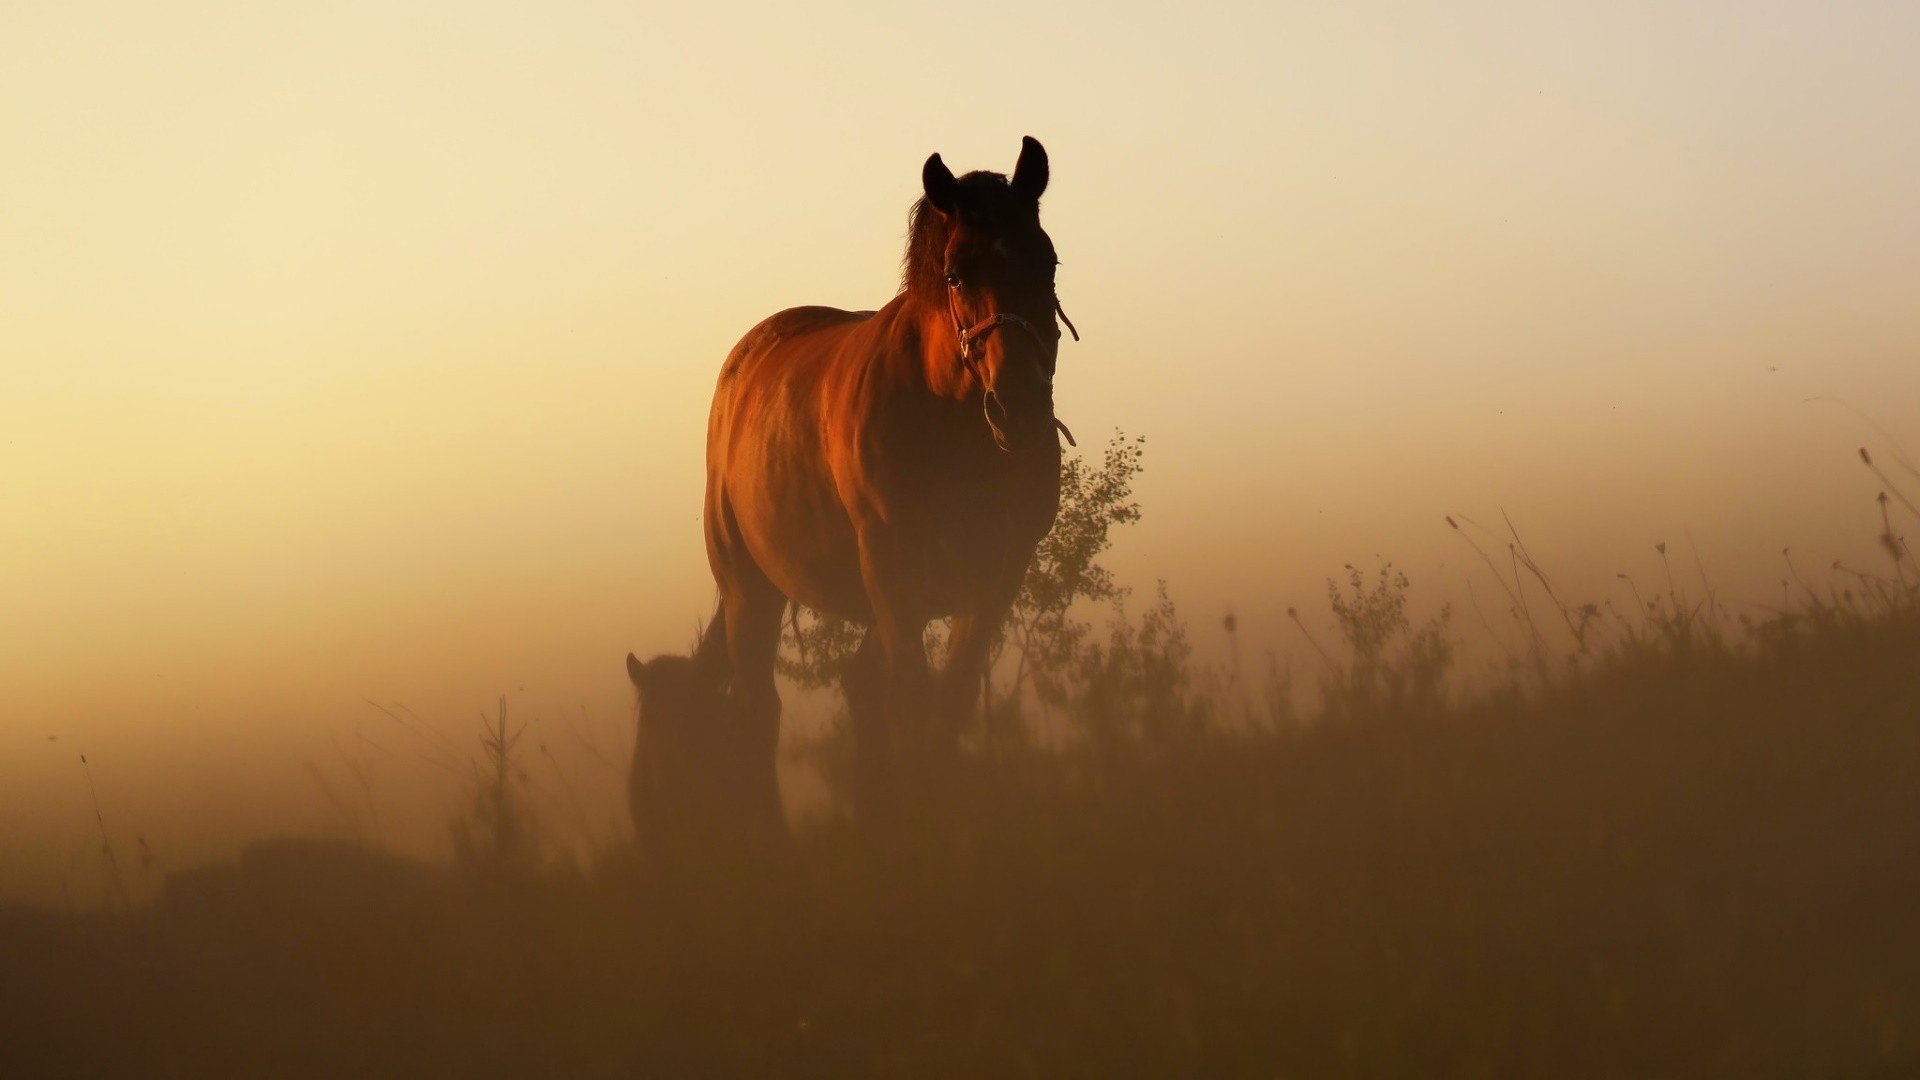 morning, Animals, Horse, Sunlight HD Wallpapers / Desktop